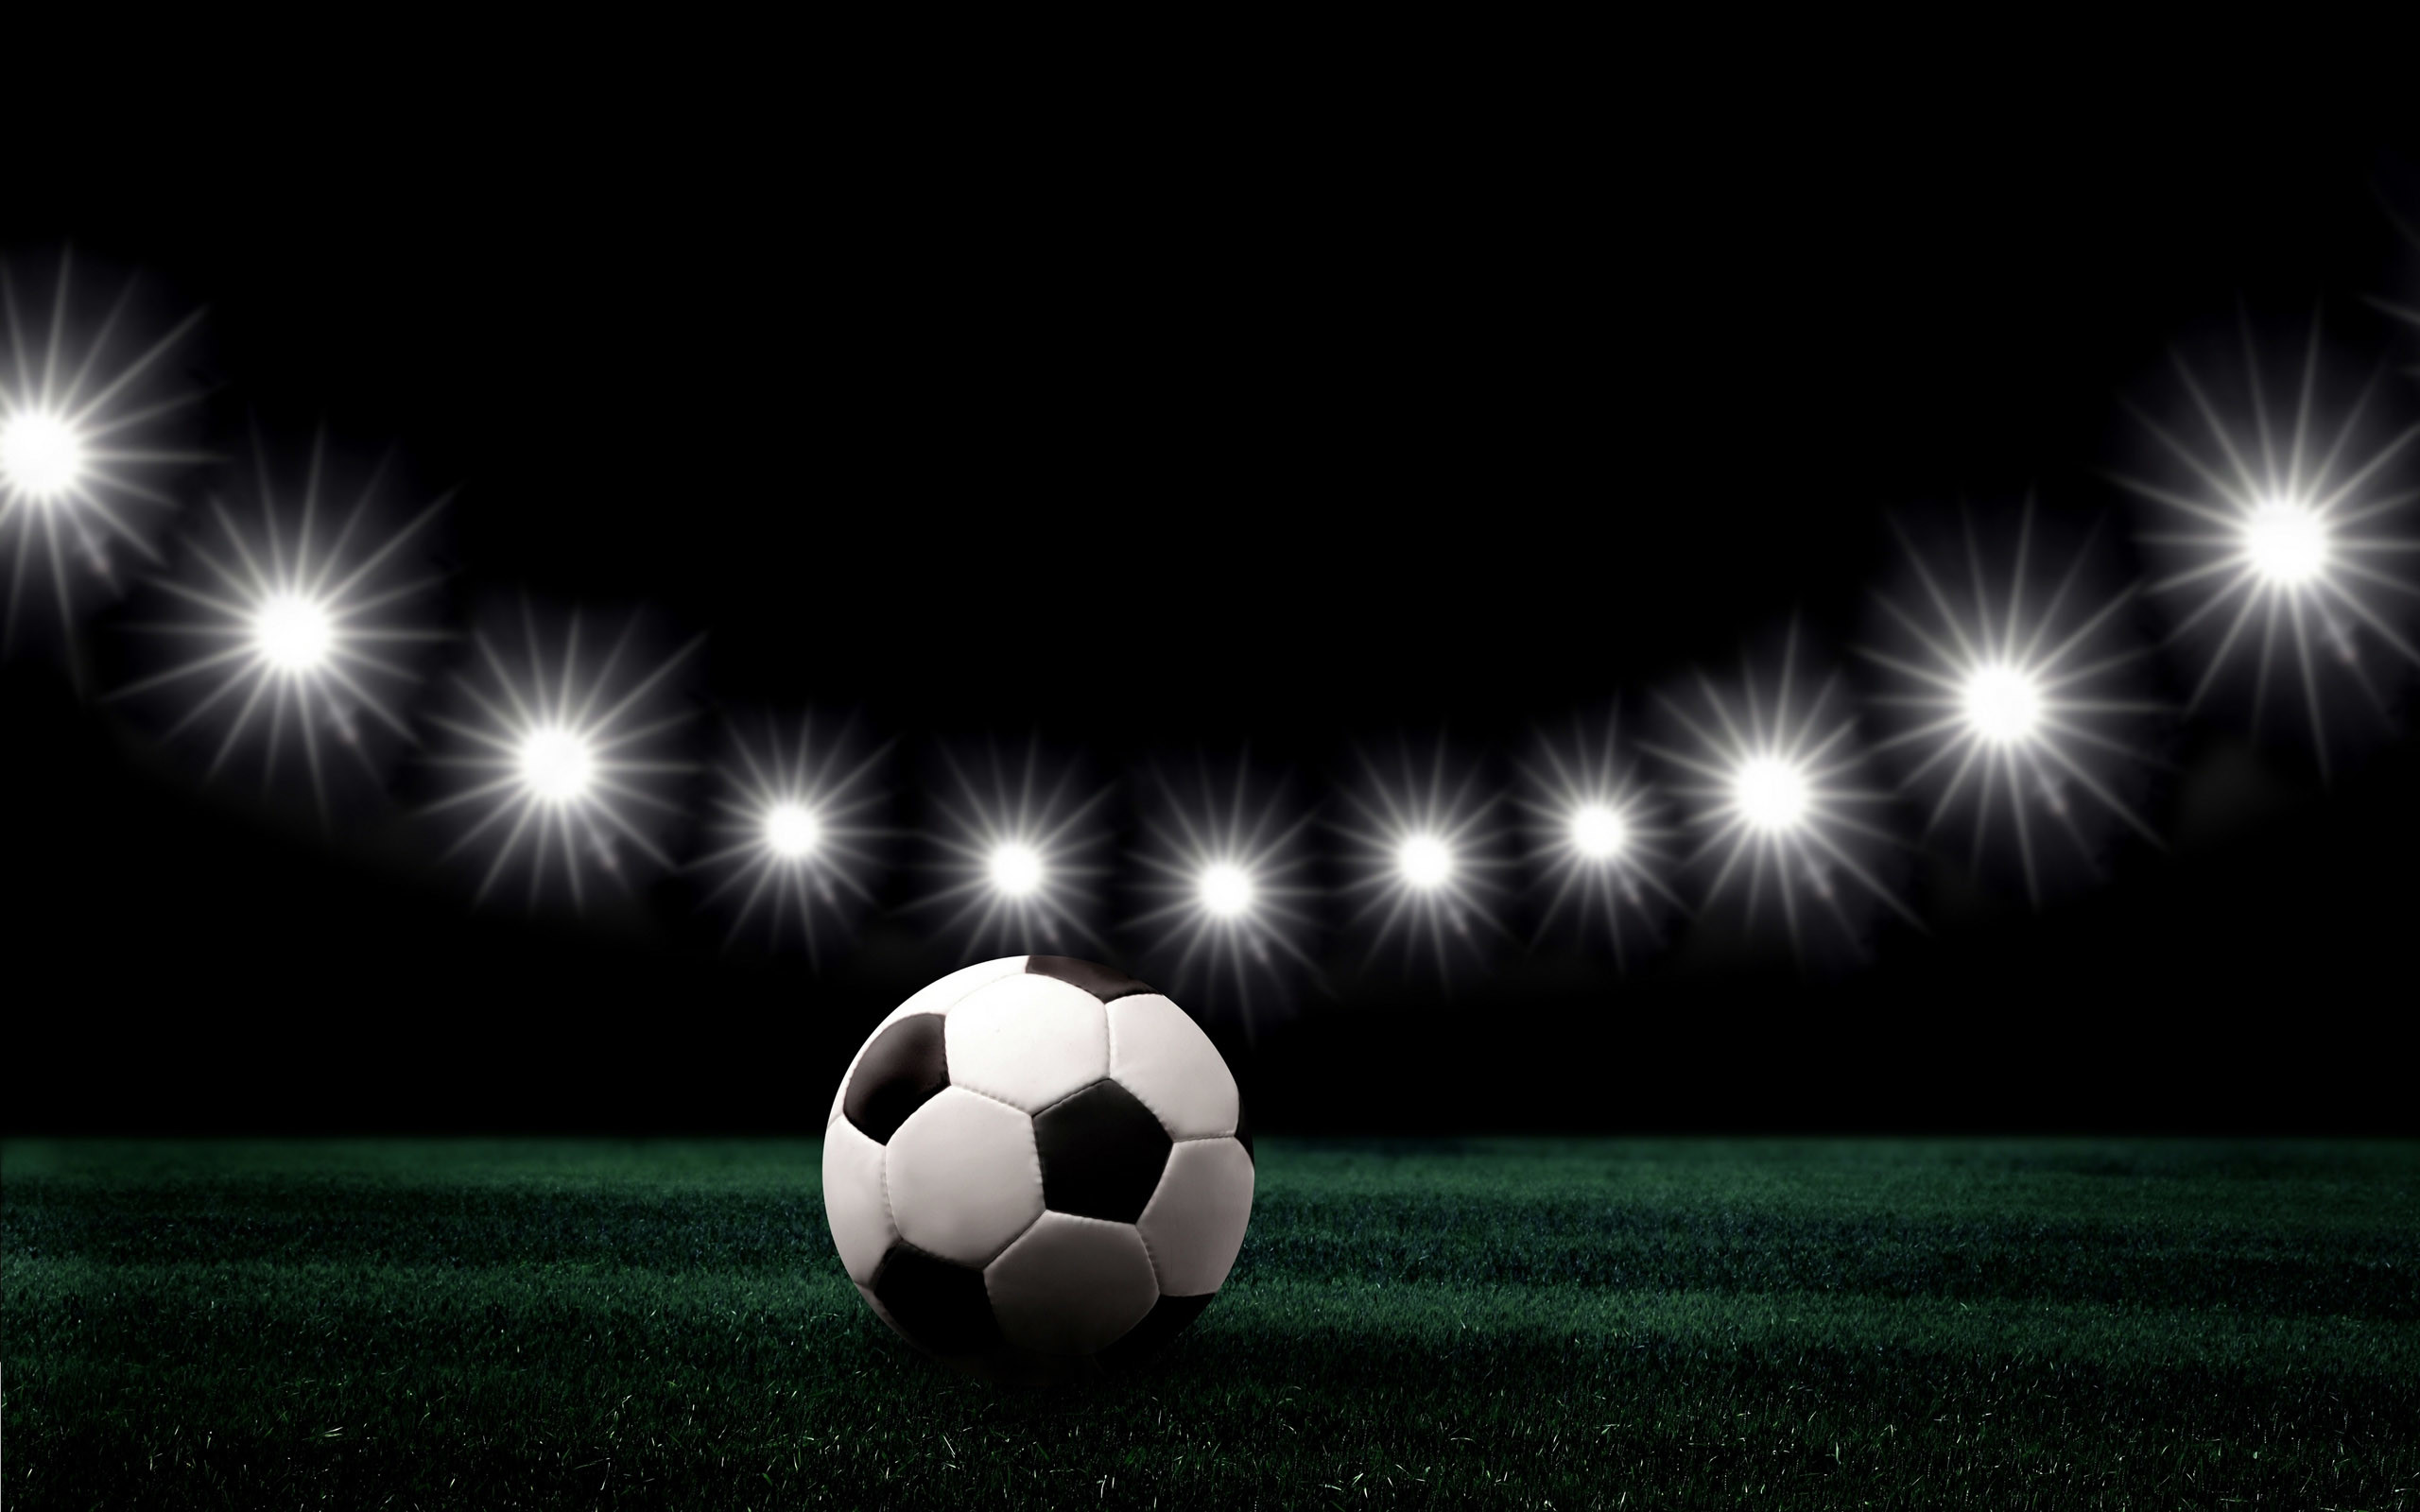 Soccer wallpapers hd hd voltagebd Choice Image